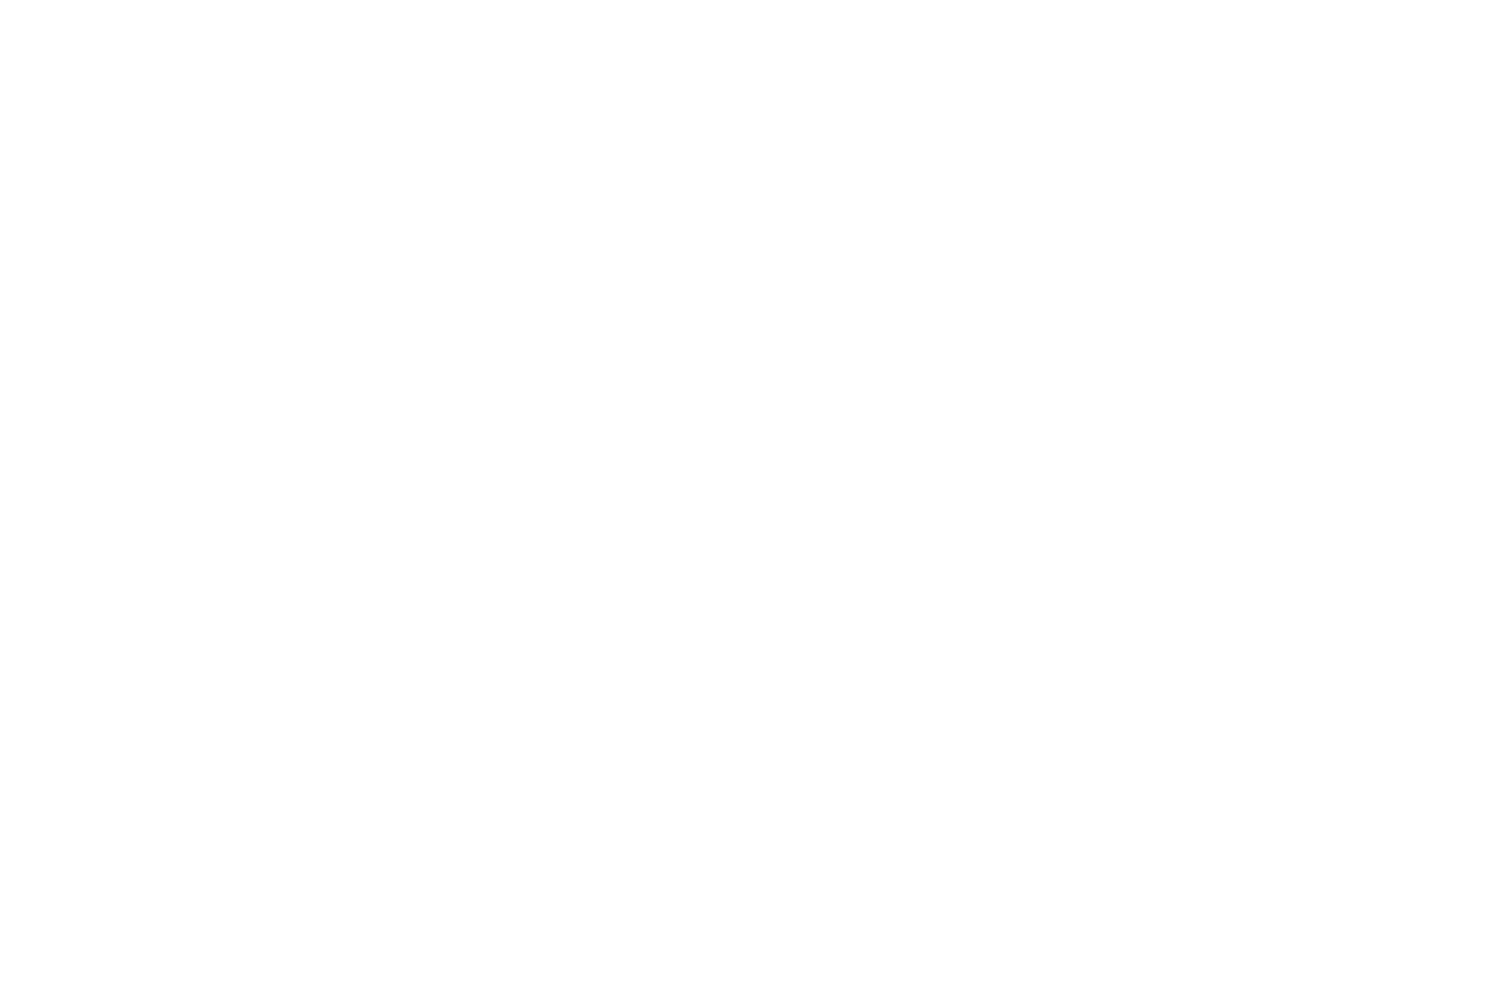 Tribeca Channel